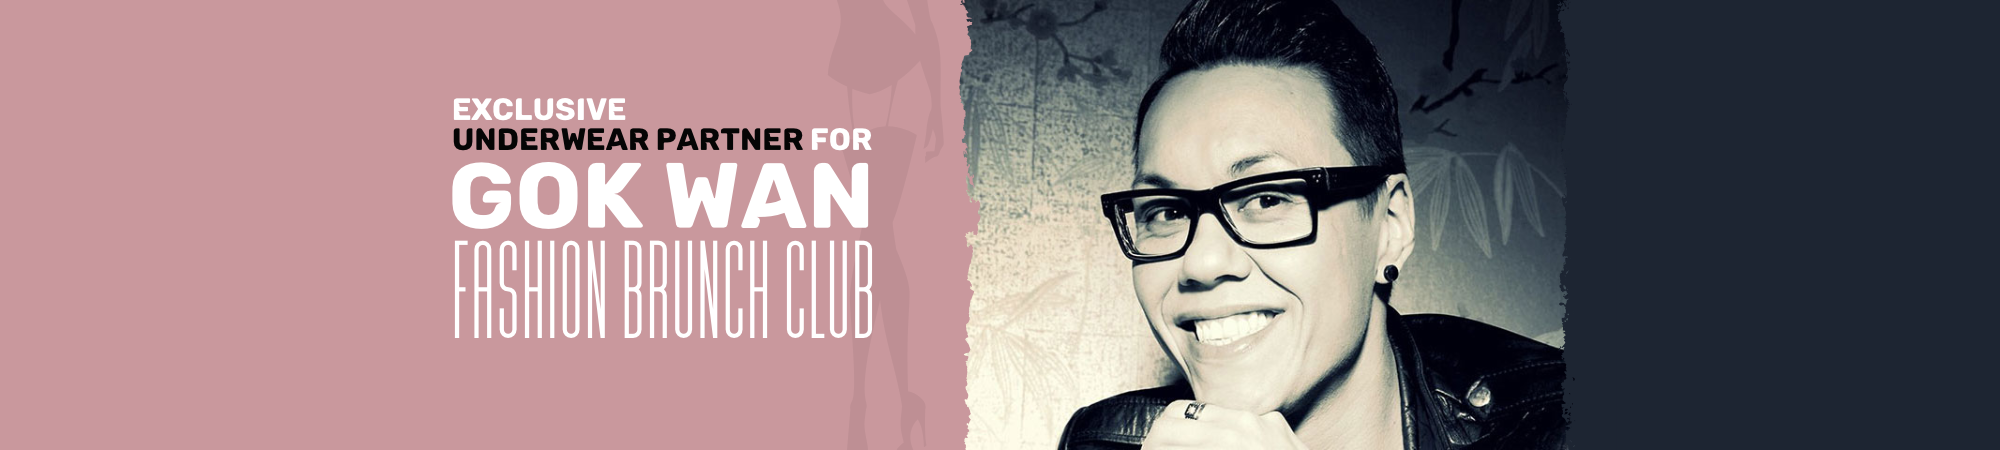 Underwear partner for Gok Wans Fashion Brunch Club